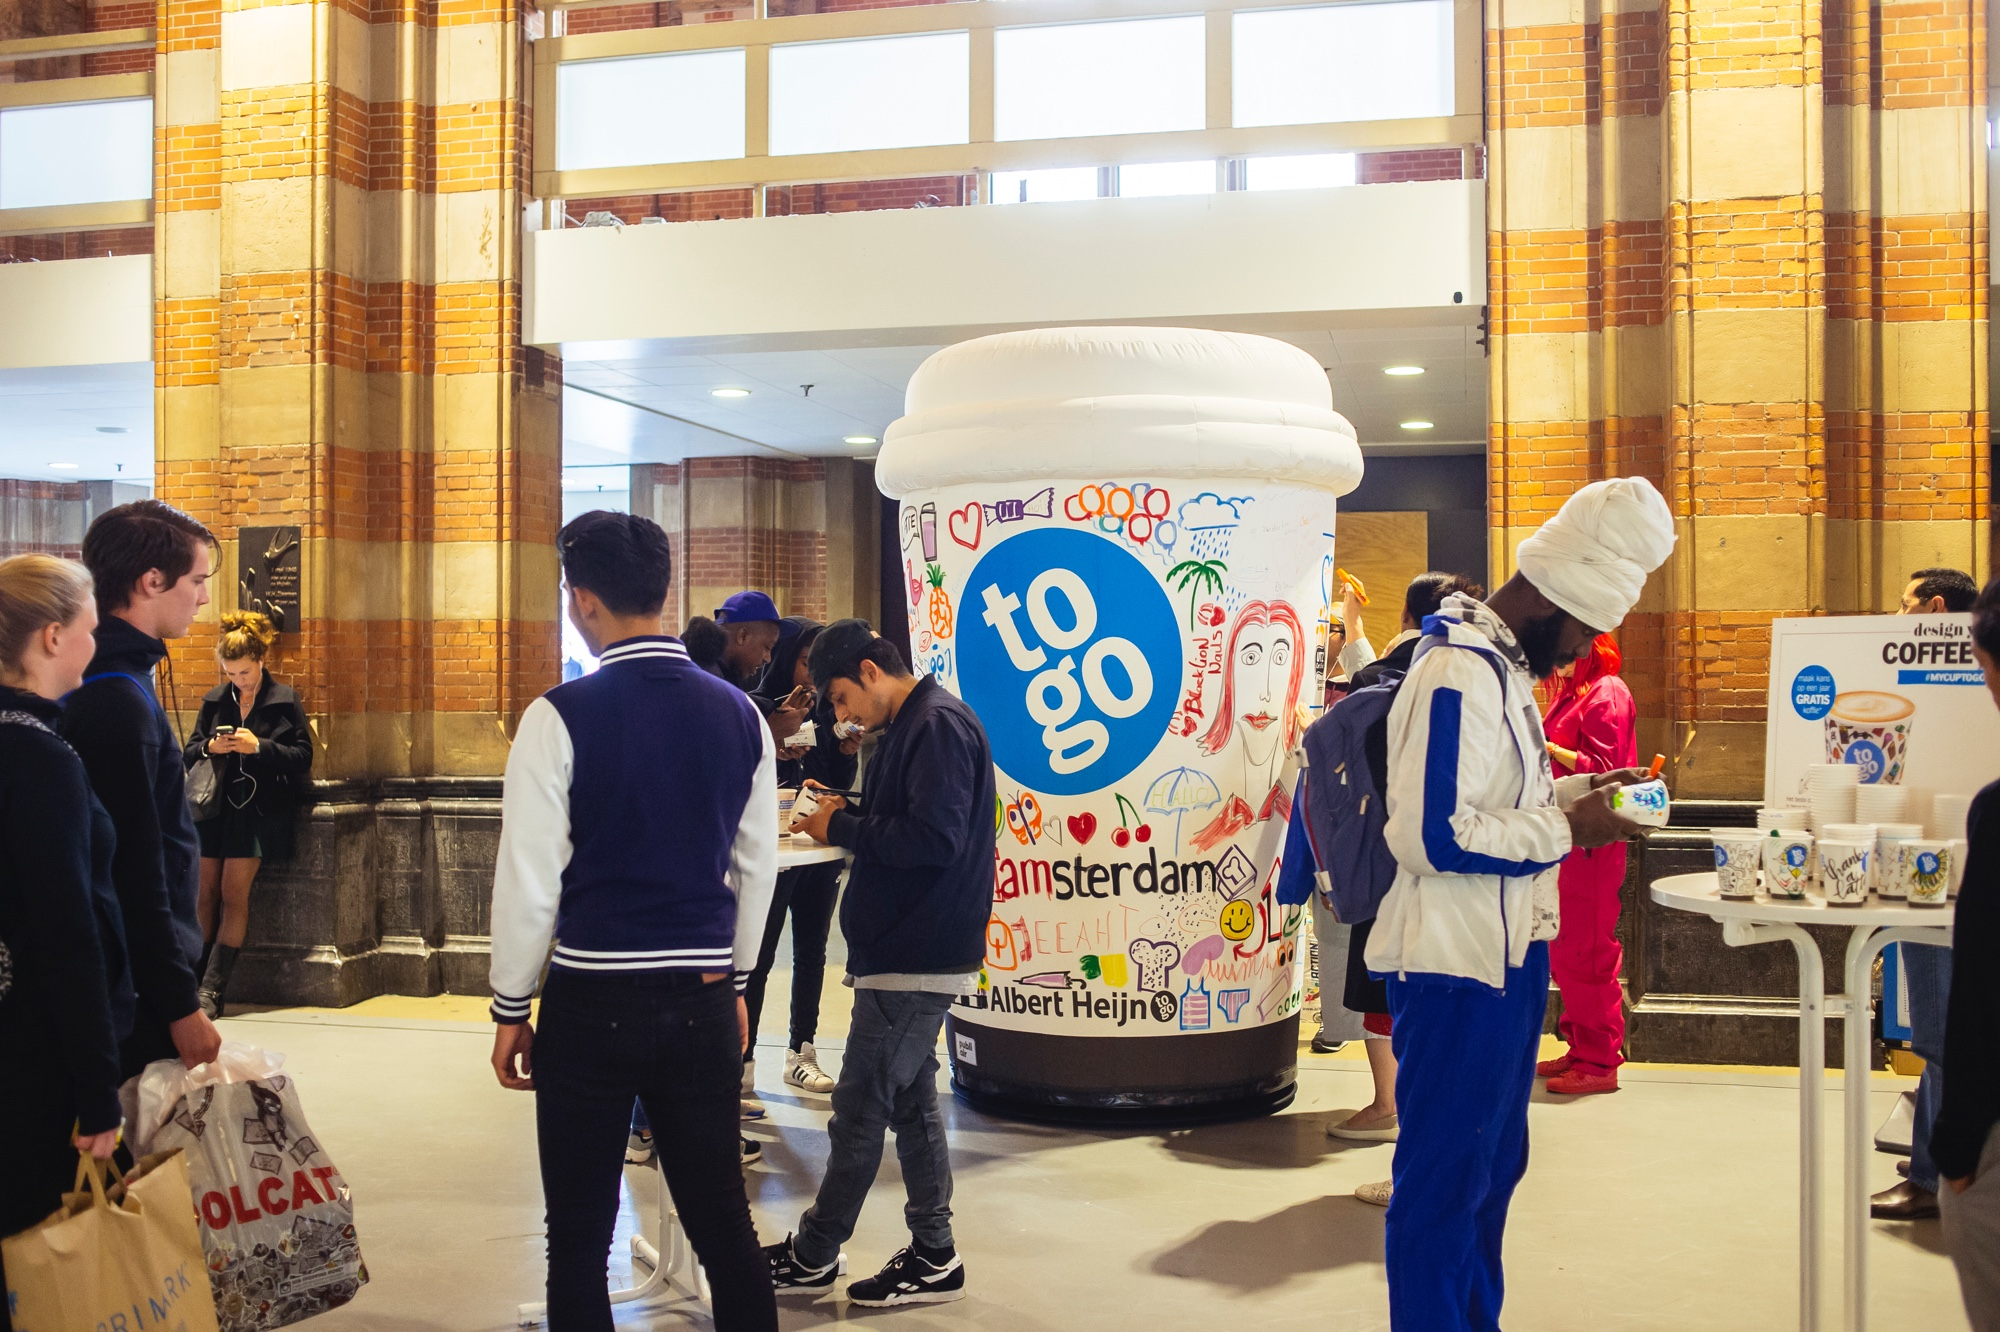 AH-to-go opblaasbare koffiebeker thema activatie giant coffeecup theme activation - Publi air